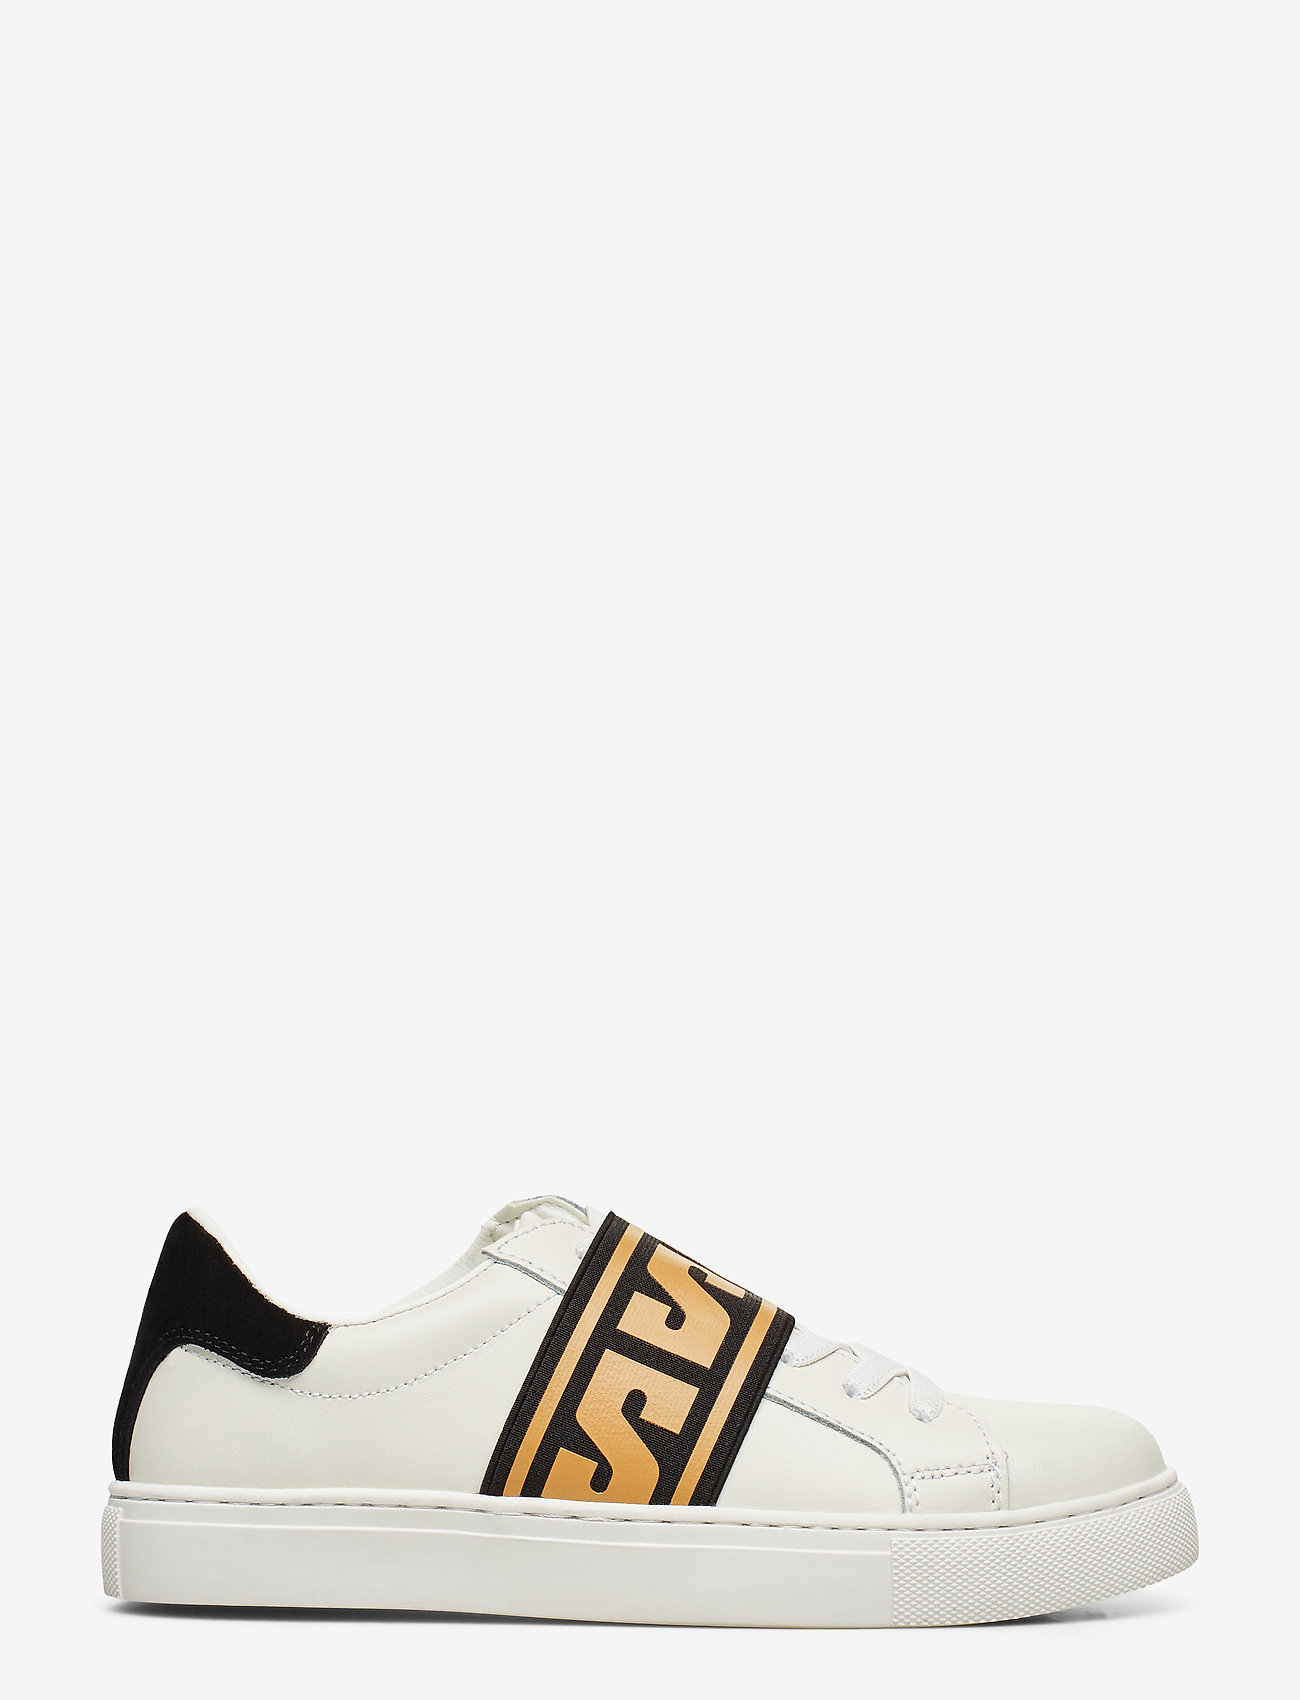 Sofie Schnoor - Shoe - lave sneakers - white - 1